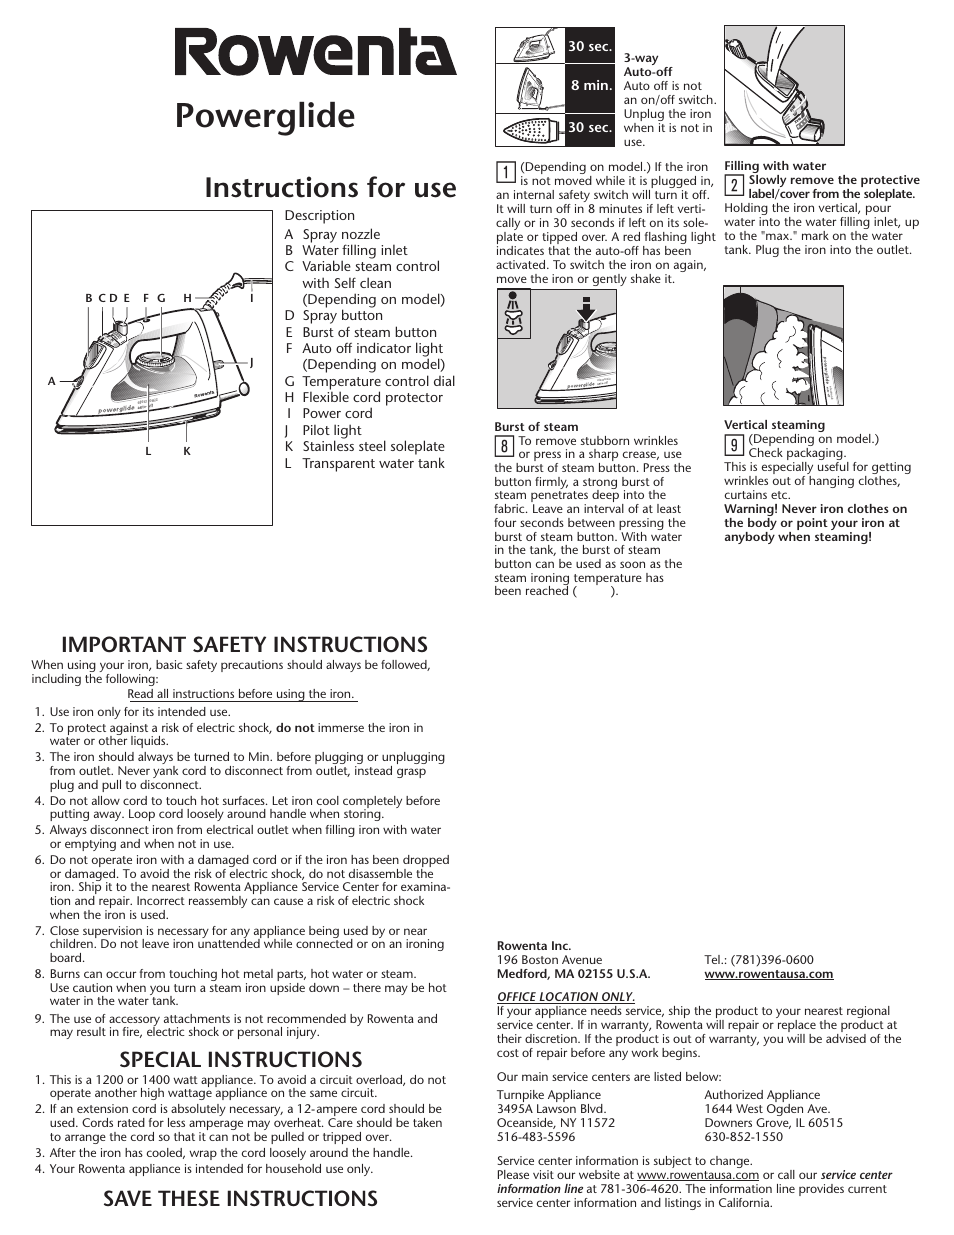 Rowenta Powerglide Steam Iron User Manual